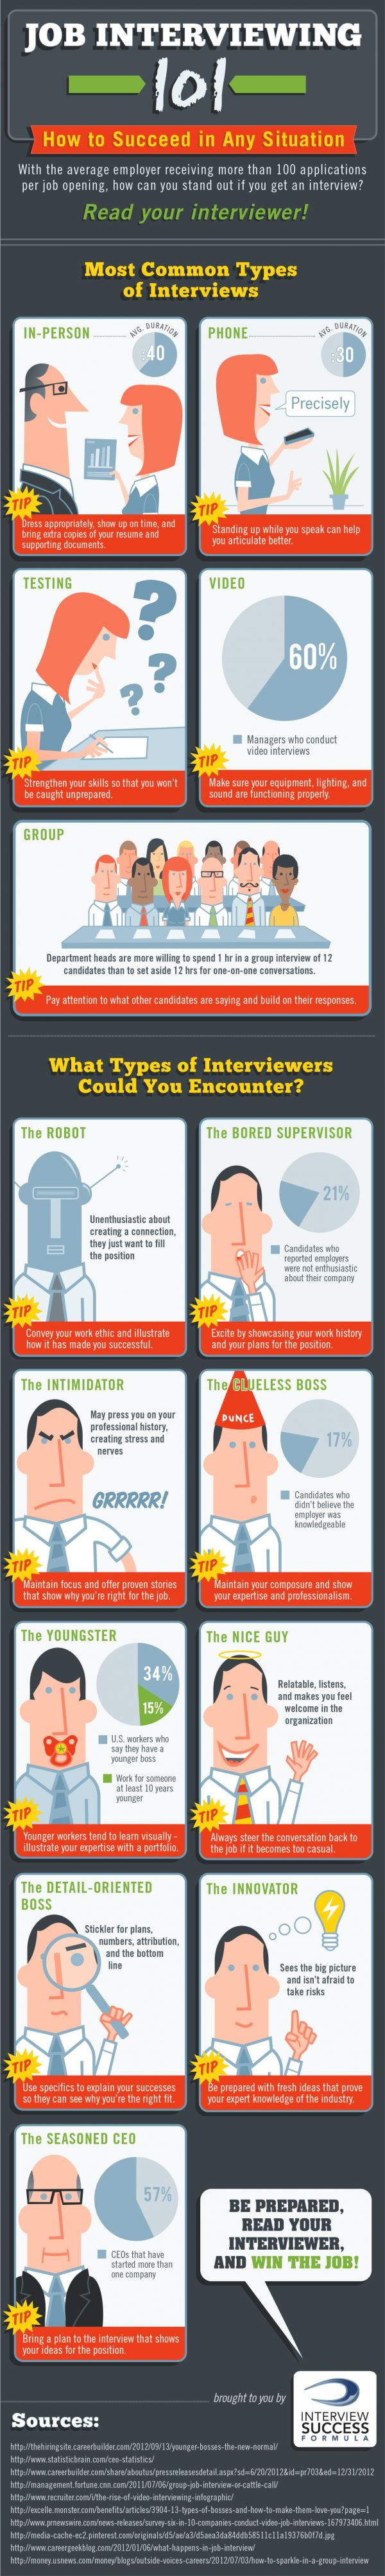 The 25+ Best Job Interview Quotes Ideas On Pinterest  Questions For Job  Interview, Interview Questions And List Of Interview Questions